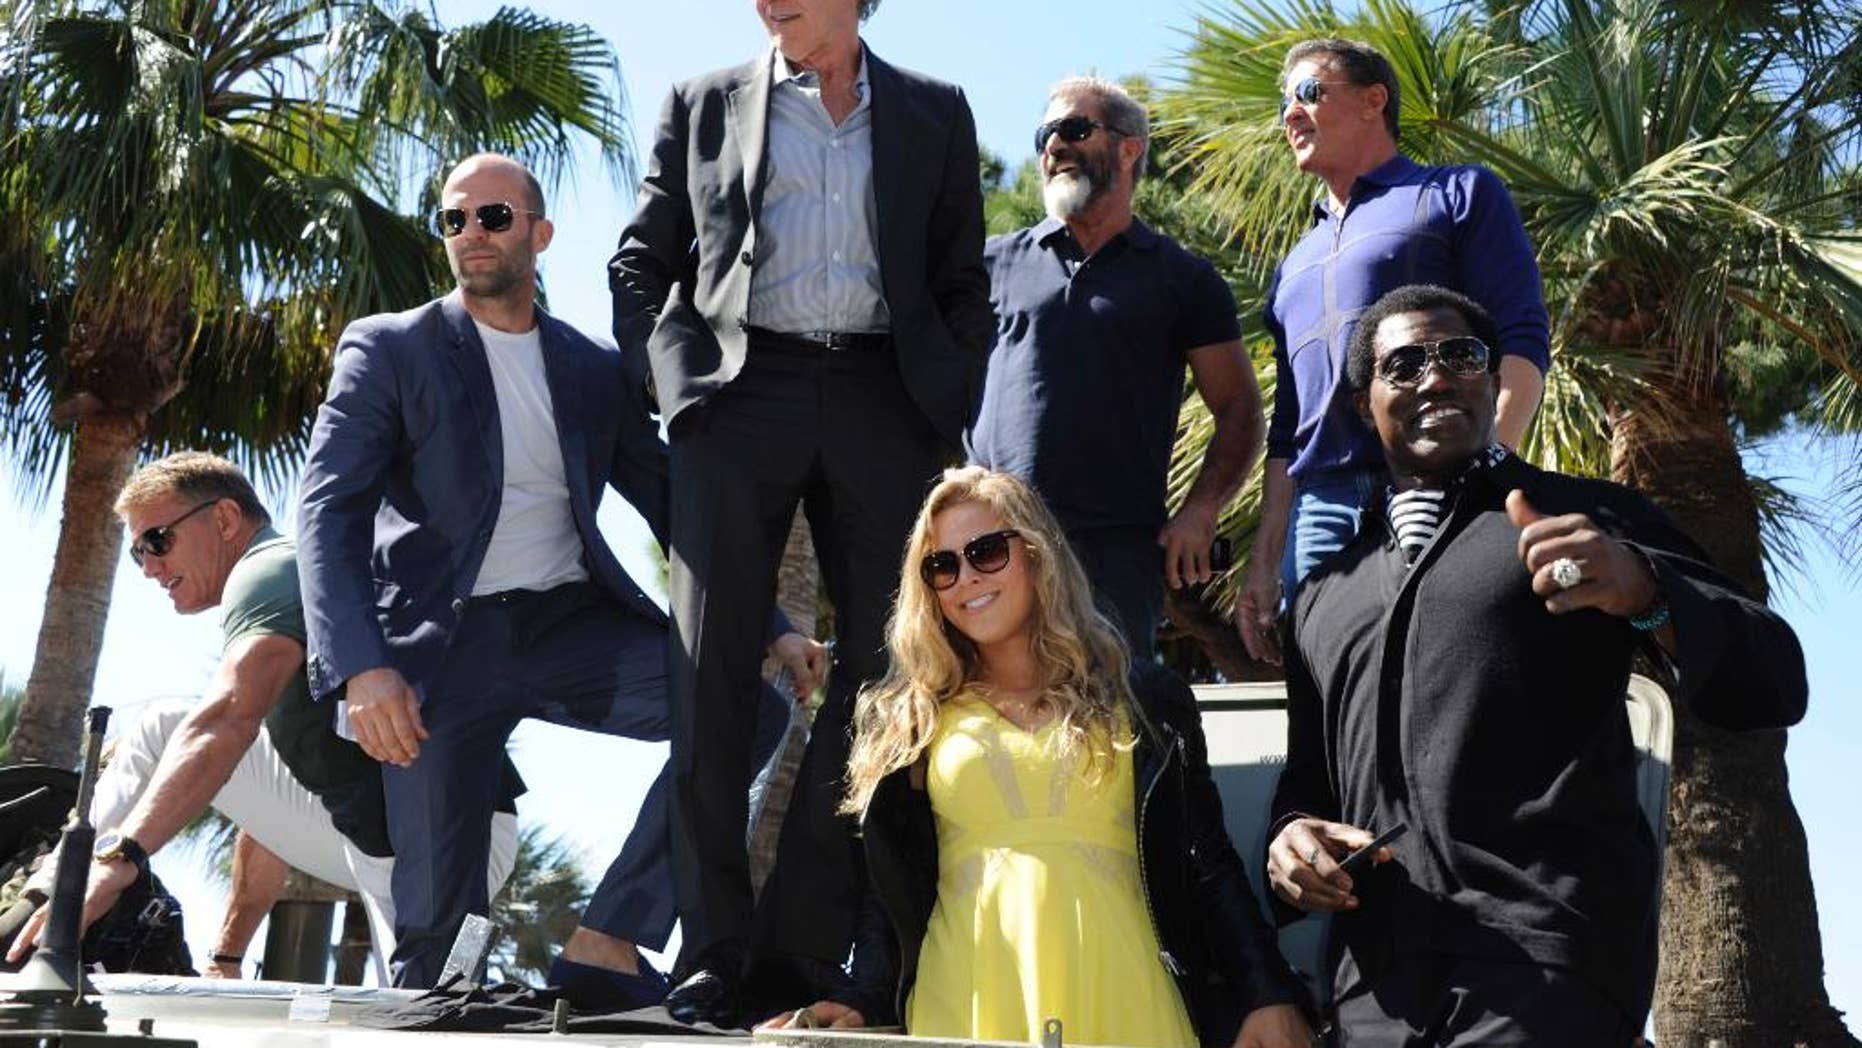 """From left, Dolph Lundgren, Jason Statham, Harrison Ford, Mel Gibson, Sylvester Stallone, Wesley Snipes and Ronda Rousey during a photo call for """"The Expendables 3"""" at the 67th international film festival, Cannes, southern France."""